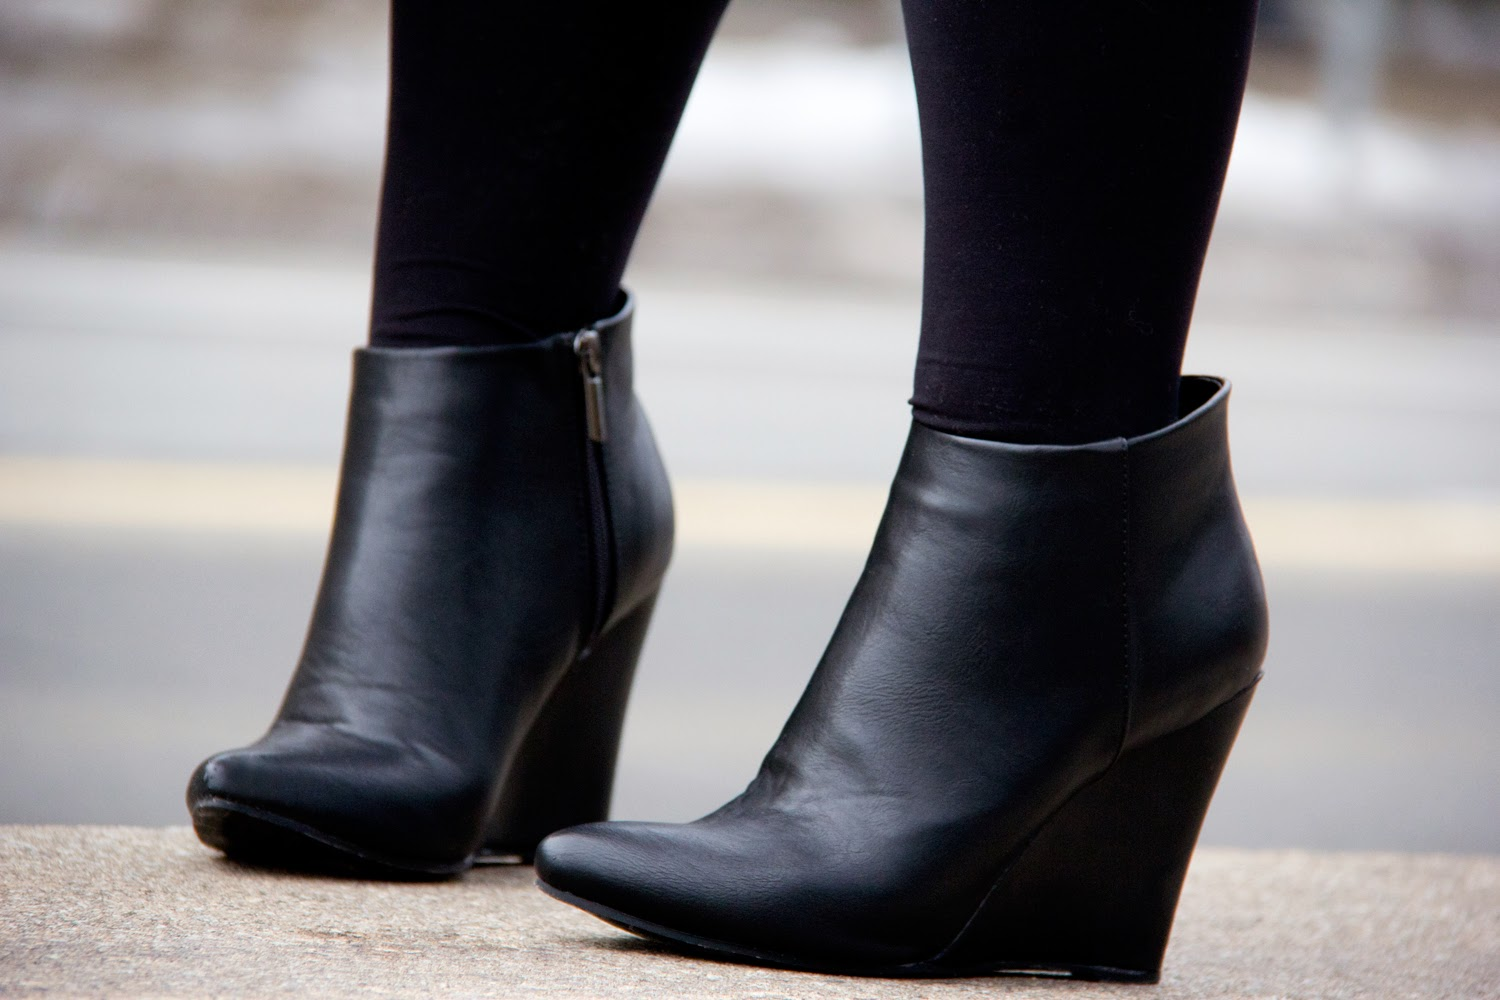 LeChateau-Black-Ankle-Boots, Footwear, Tights, Street-Fashion